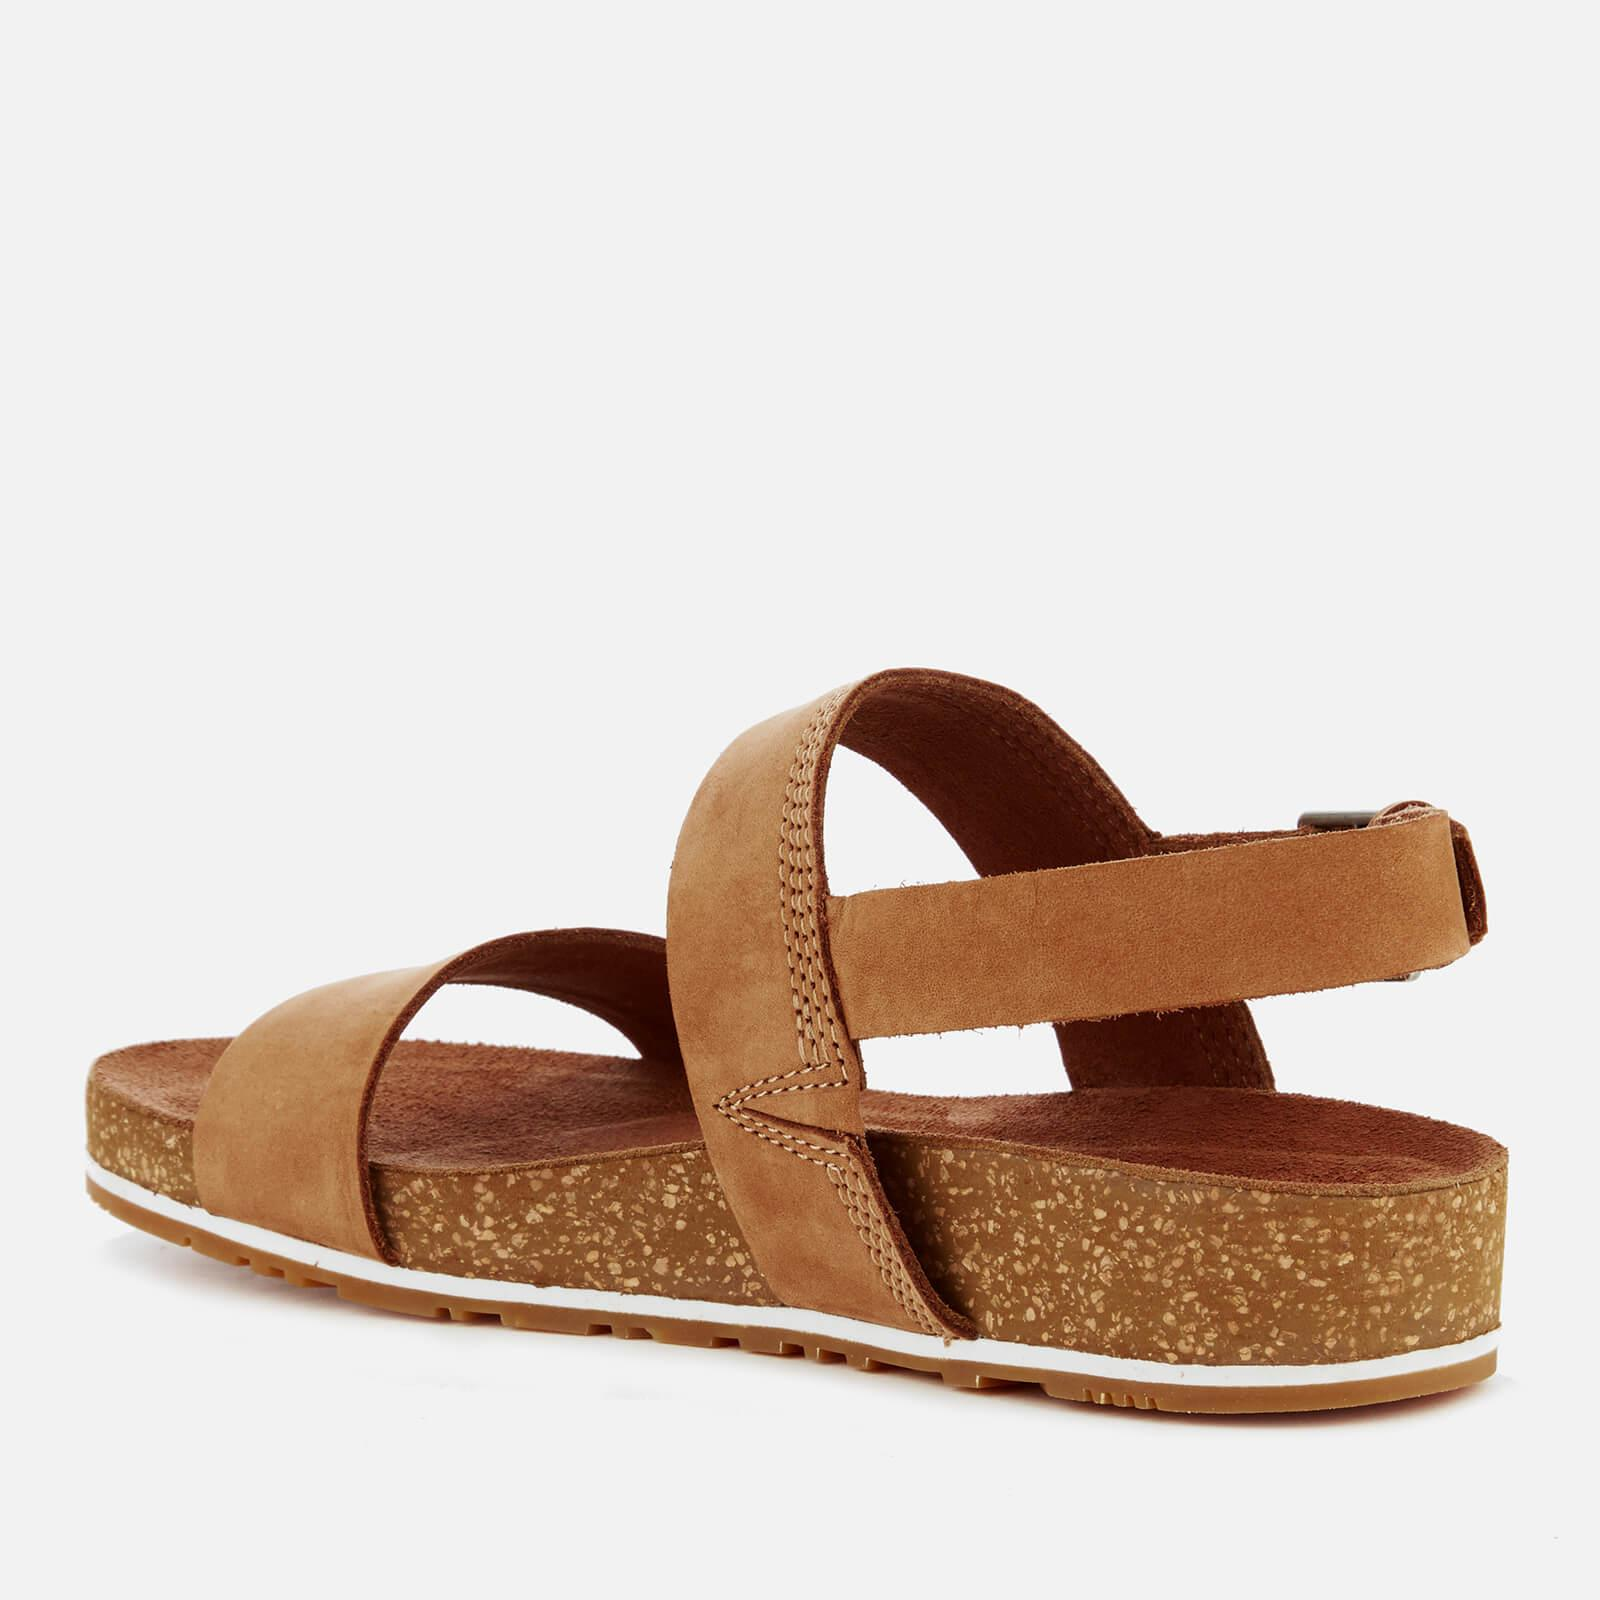 Malibu Waves 2 Bands Leather Sandals